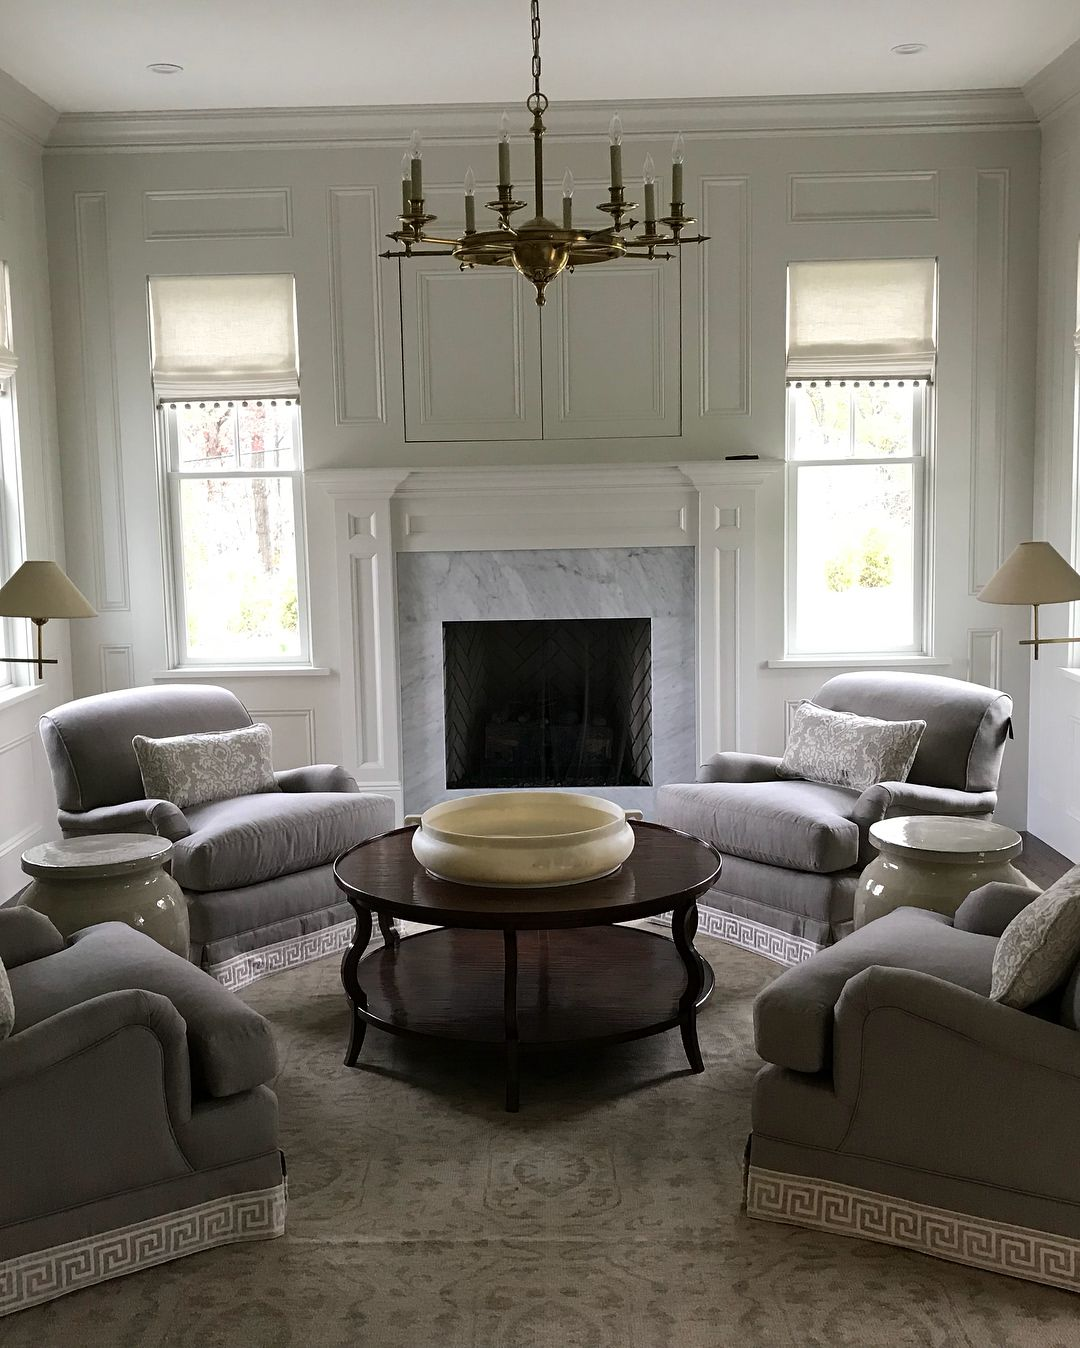 4 Comfy Chairs Around A Round Coffee Table 2 Side Tables Skinny Floor Lamp [ 1348 x 1080 Pixel ]